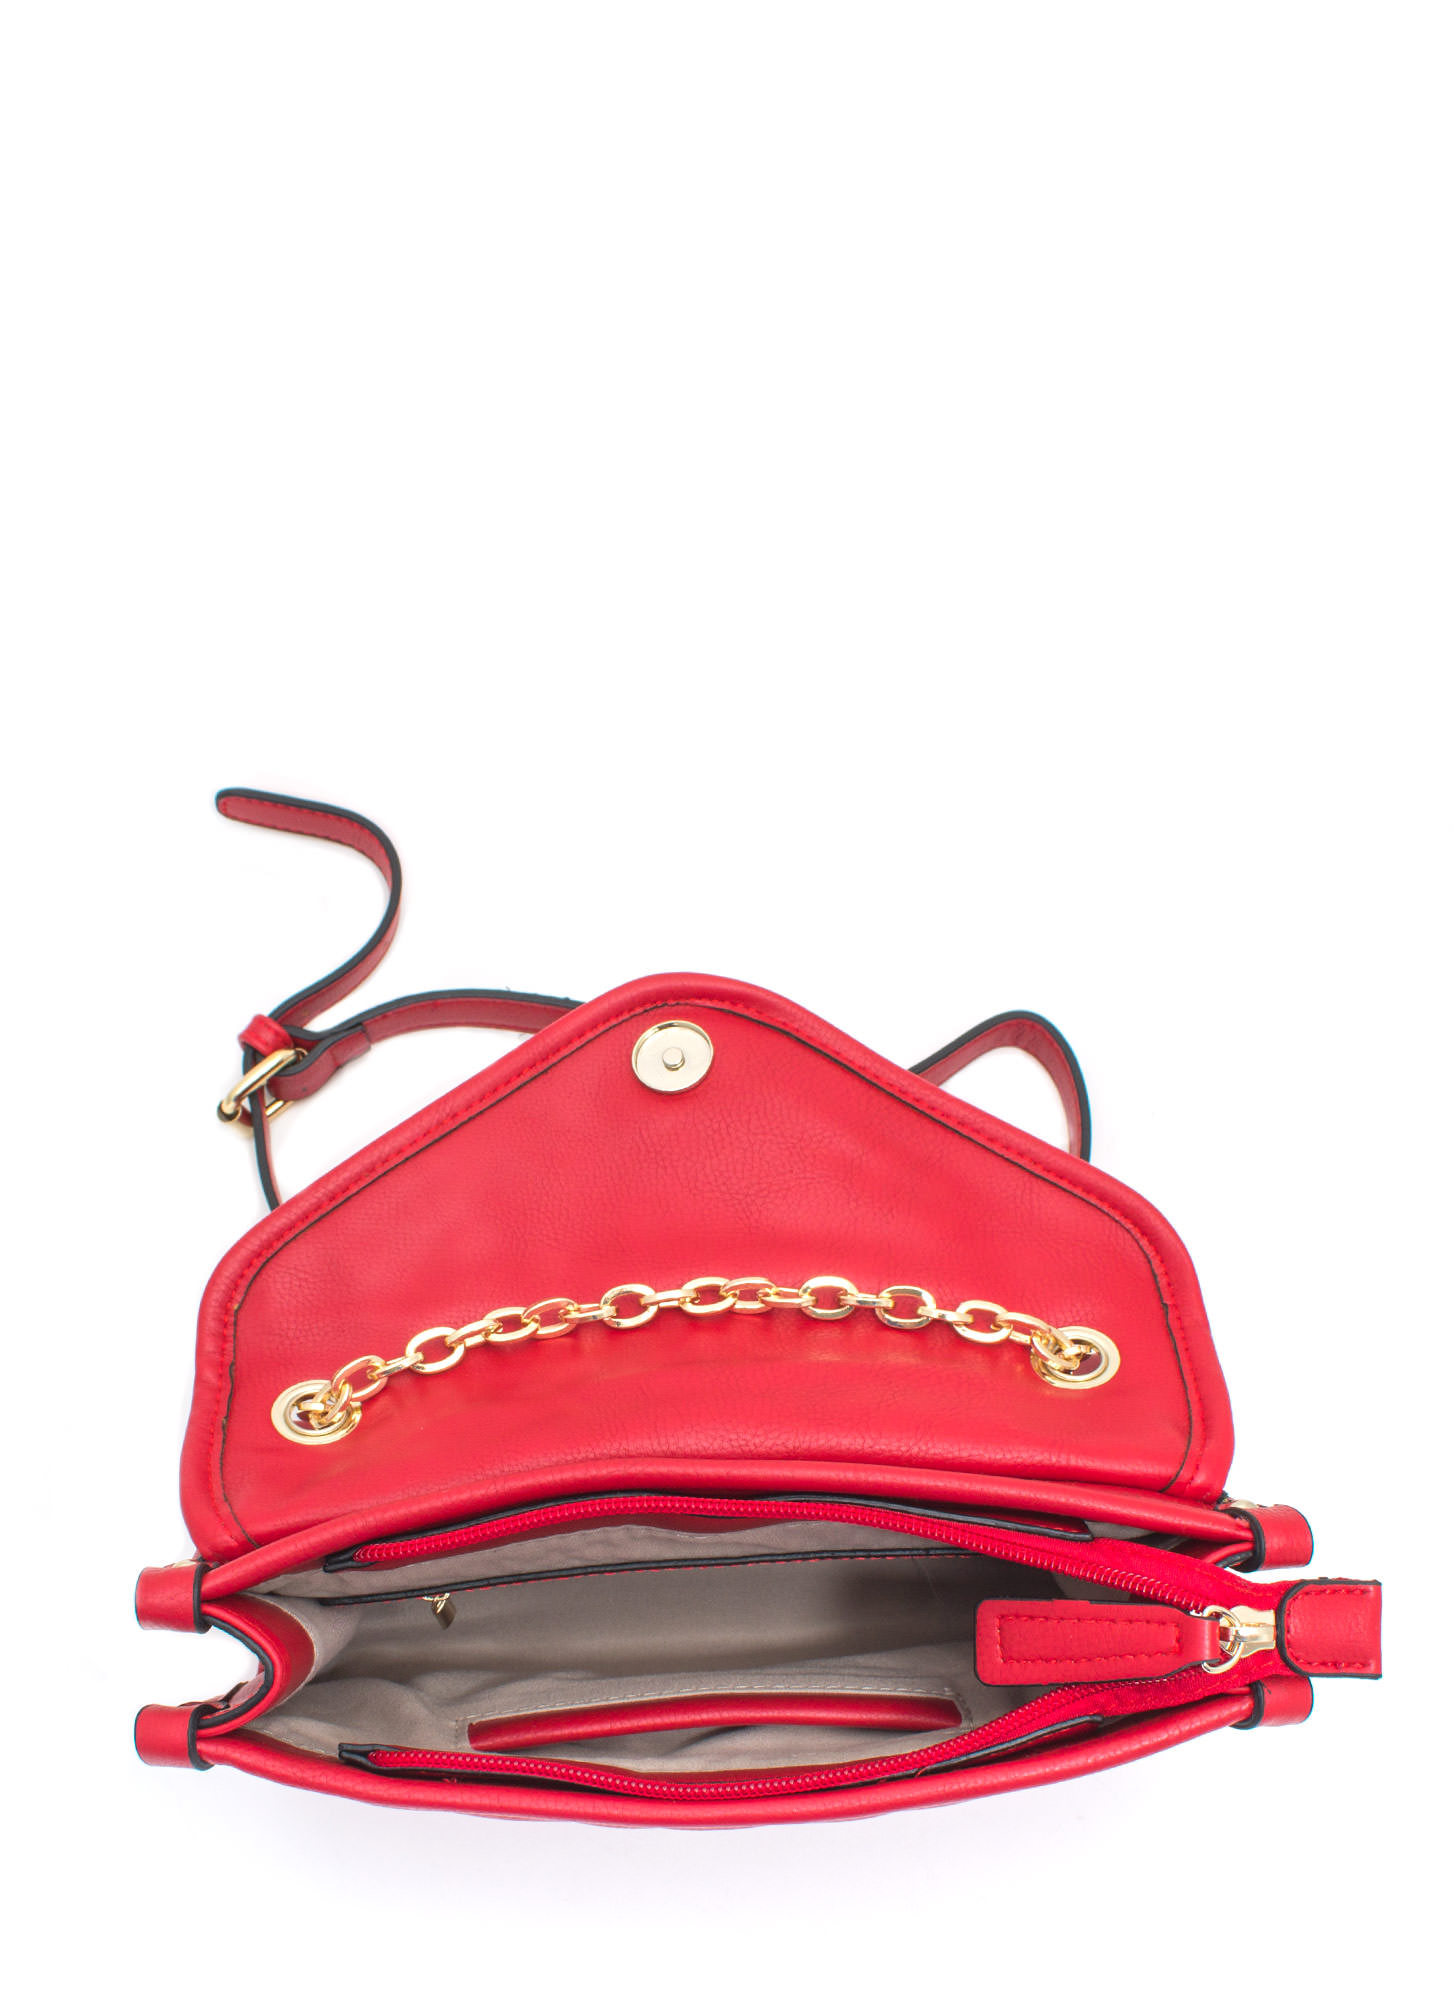 Quilty As Charged Faux Leather Clutch RED